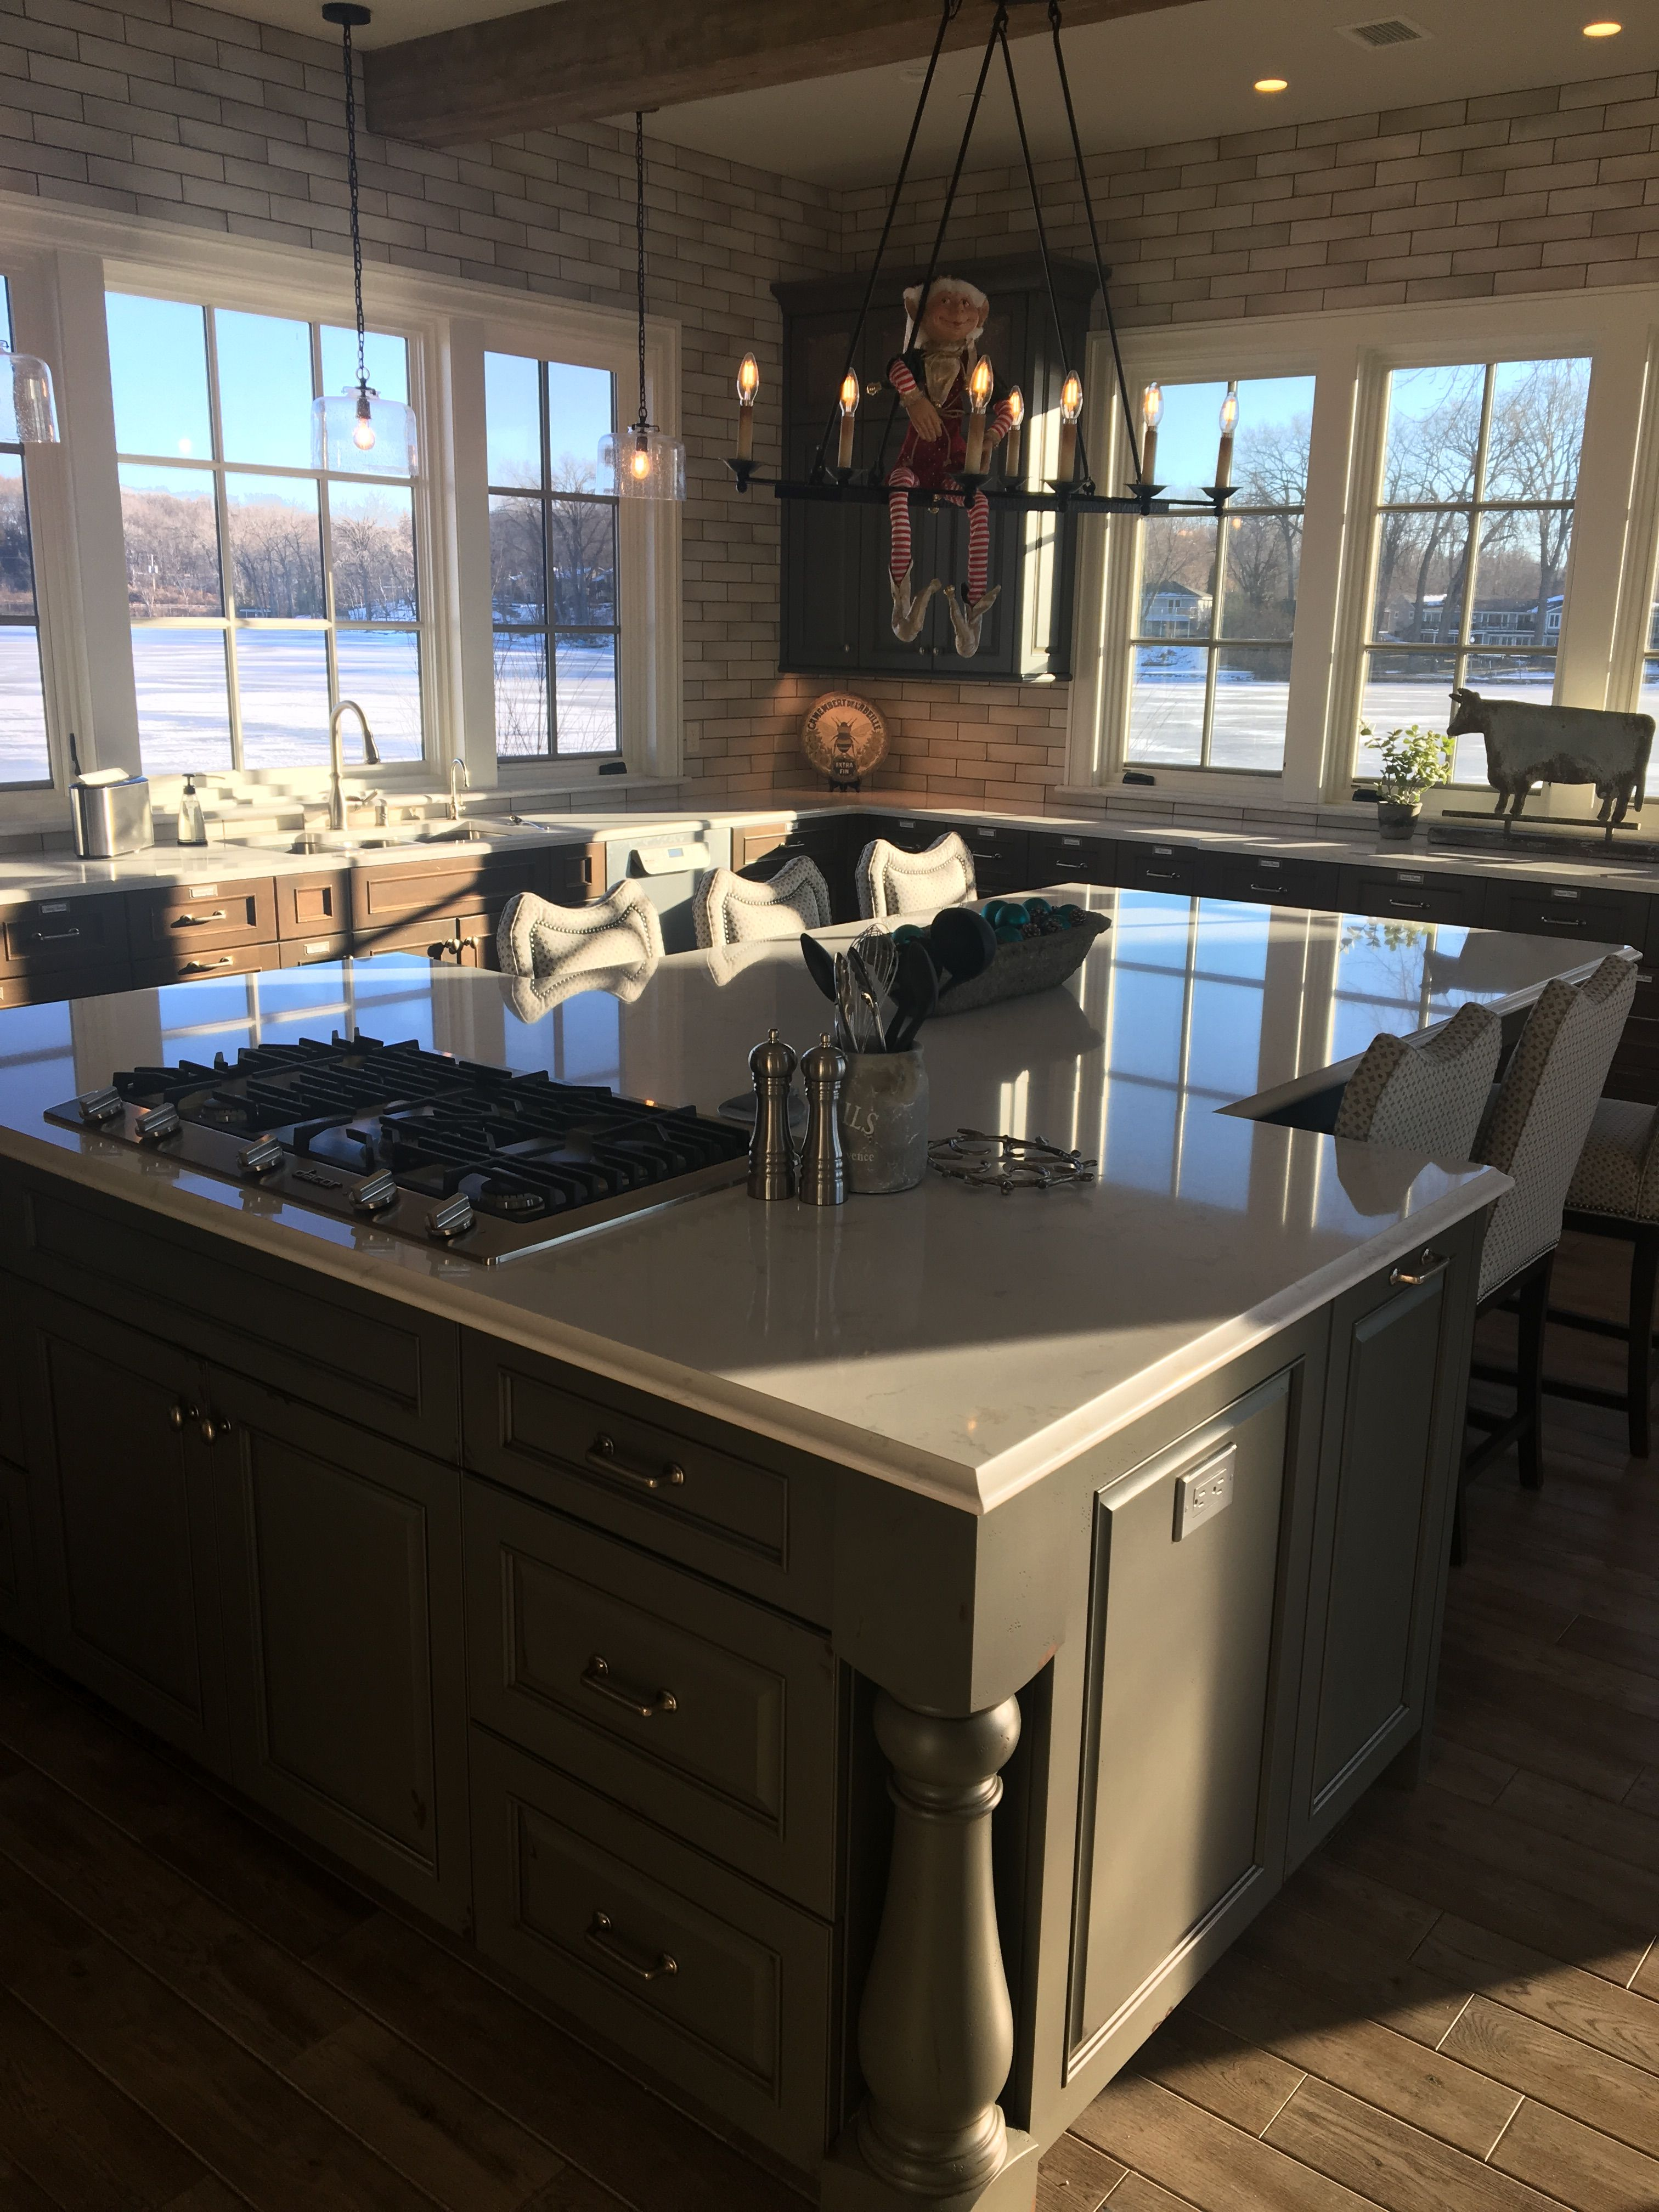 T Shaped Kitchen Island Continent With Seating Kitchen Room